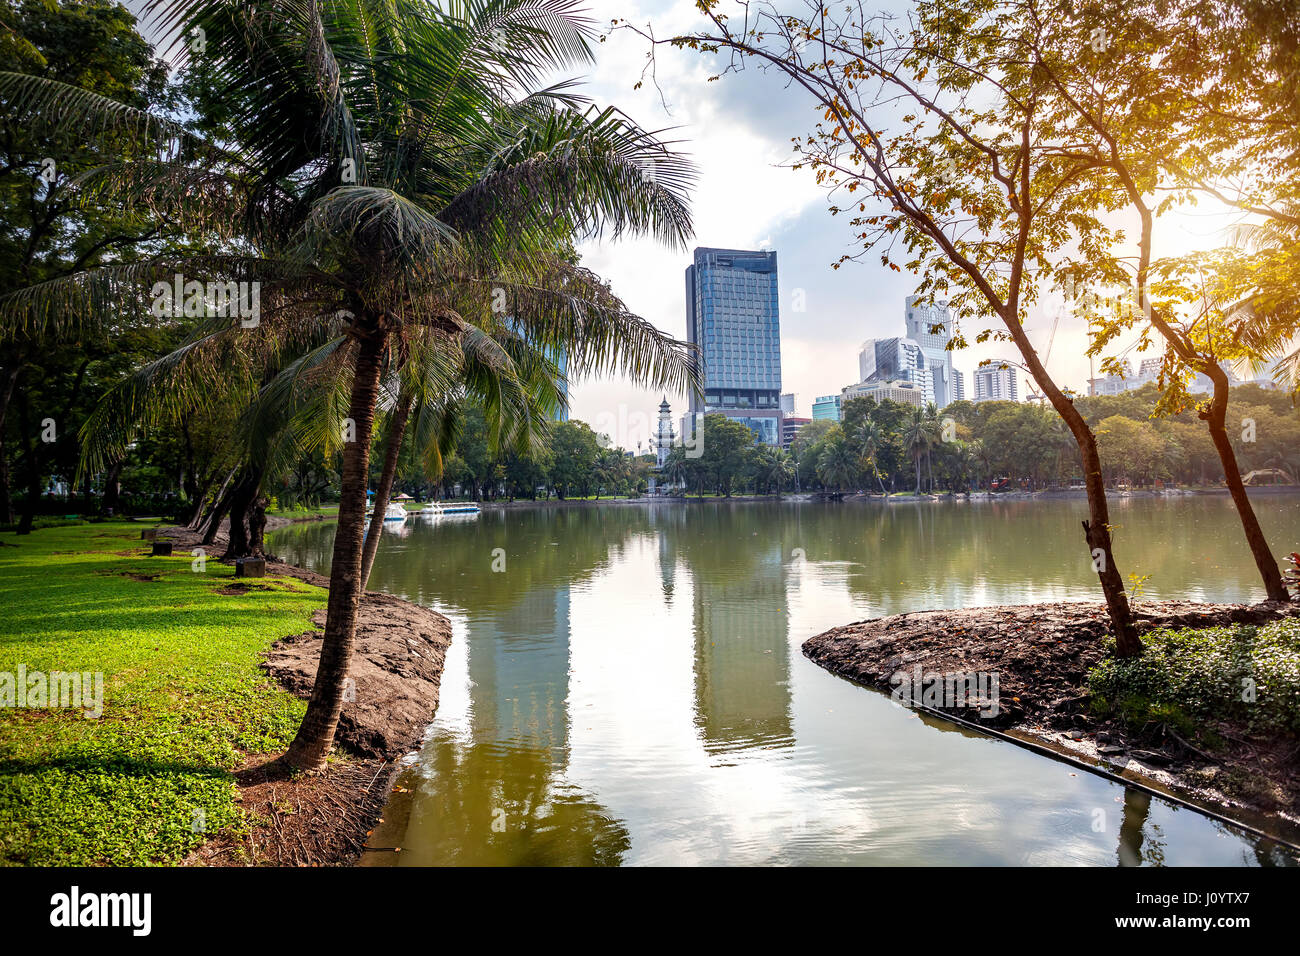 Lake in the heart of Business district in public Lumpini park of Bangkok, Thailand - Stock Image